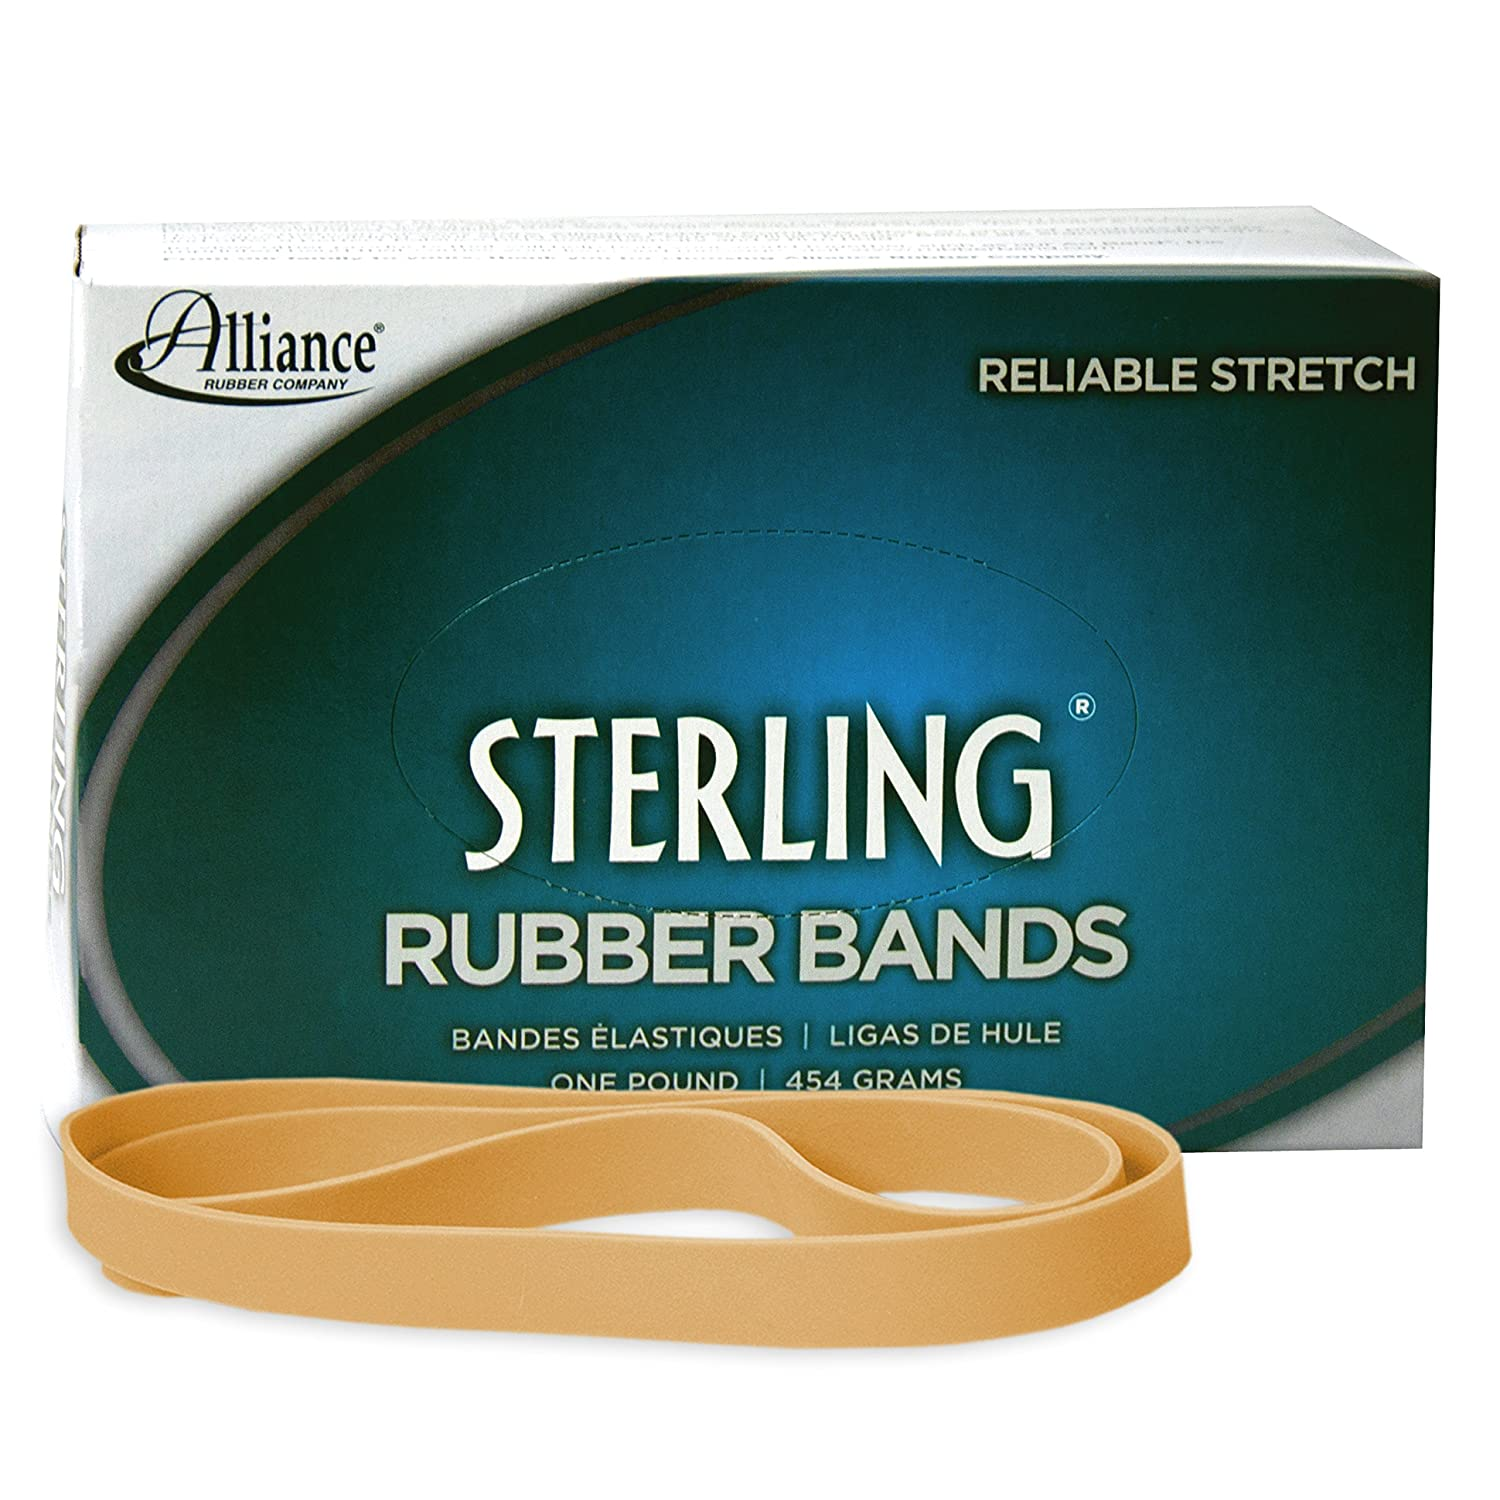 Alliance Sterling Rubber Band Size No.107 (7 x 5/8-Inch), 1 Pound Box (Approximately 50 Bands Per Pound) - 25075